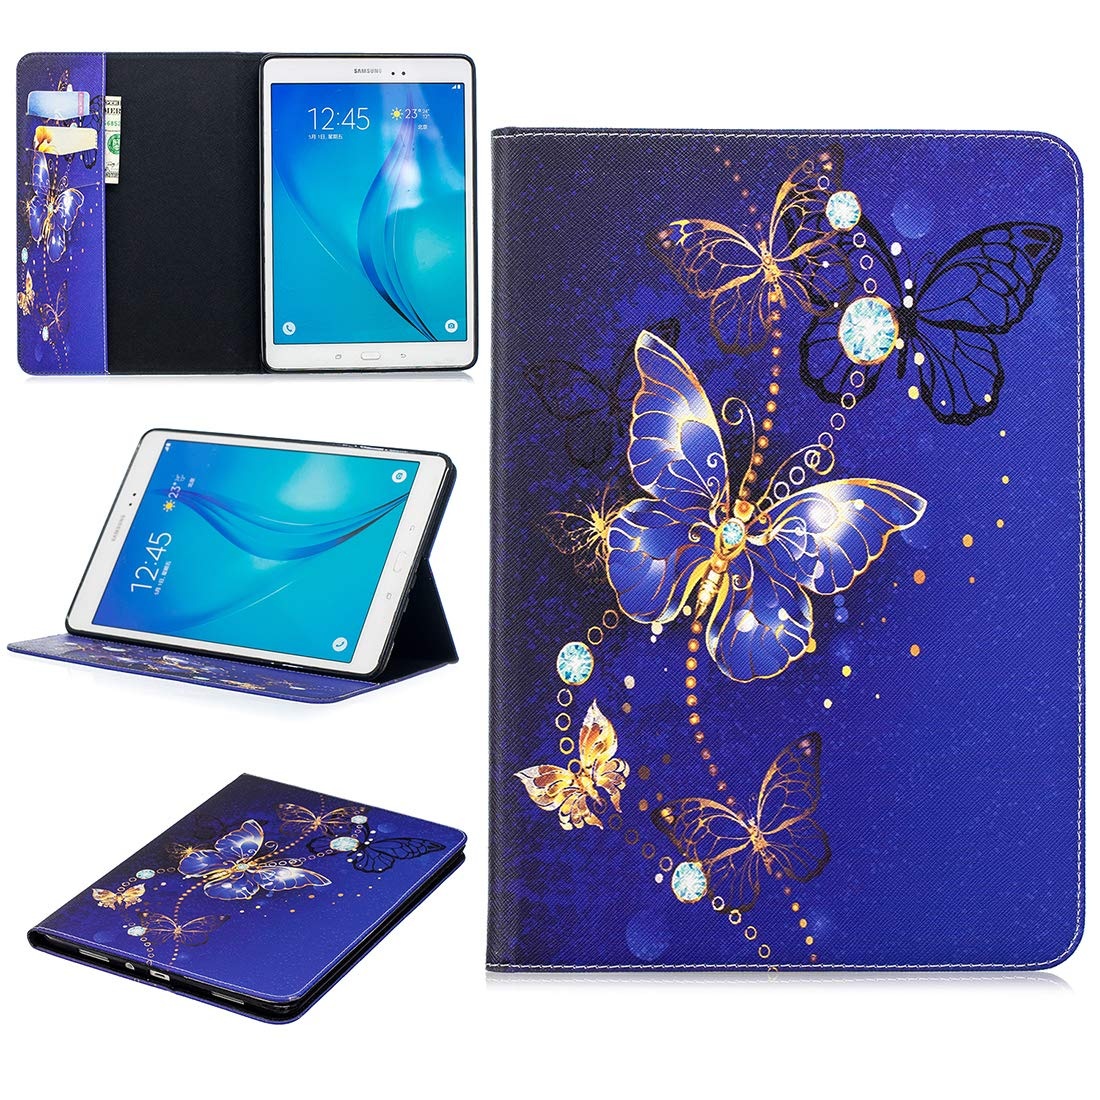 Samsung Galaxy Tab S3 9,7 Case Cover, Lotuslnn Slim Smart Shell Stand Cover with Protective and Auto Sleep/Wake for Samsung Galaxy Tab S3 9.7-Inch Tablet (SM-T820/T825)(with 1 Touch Pen) - Hello Panda